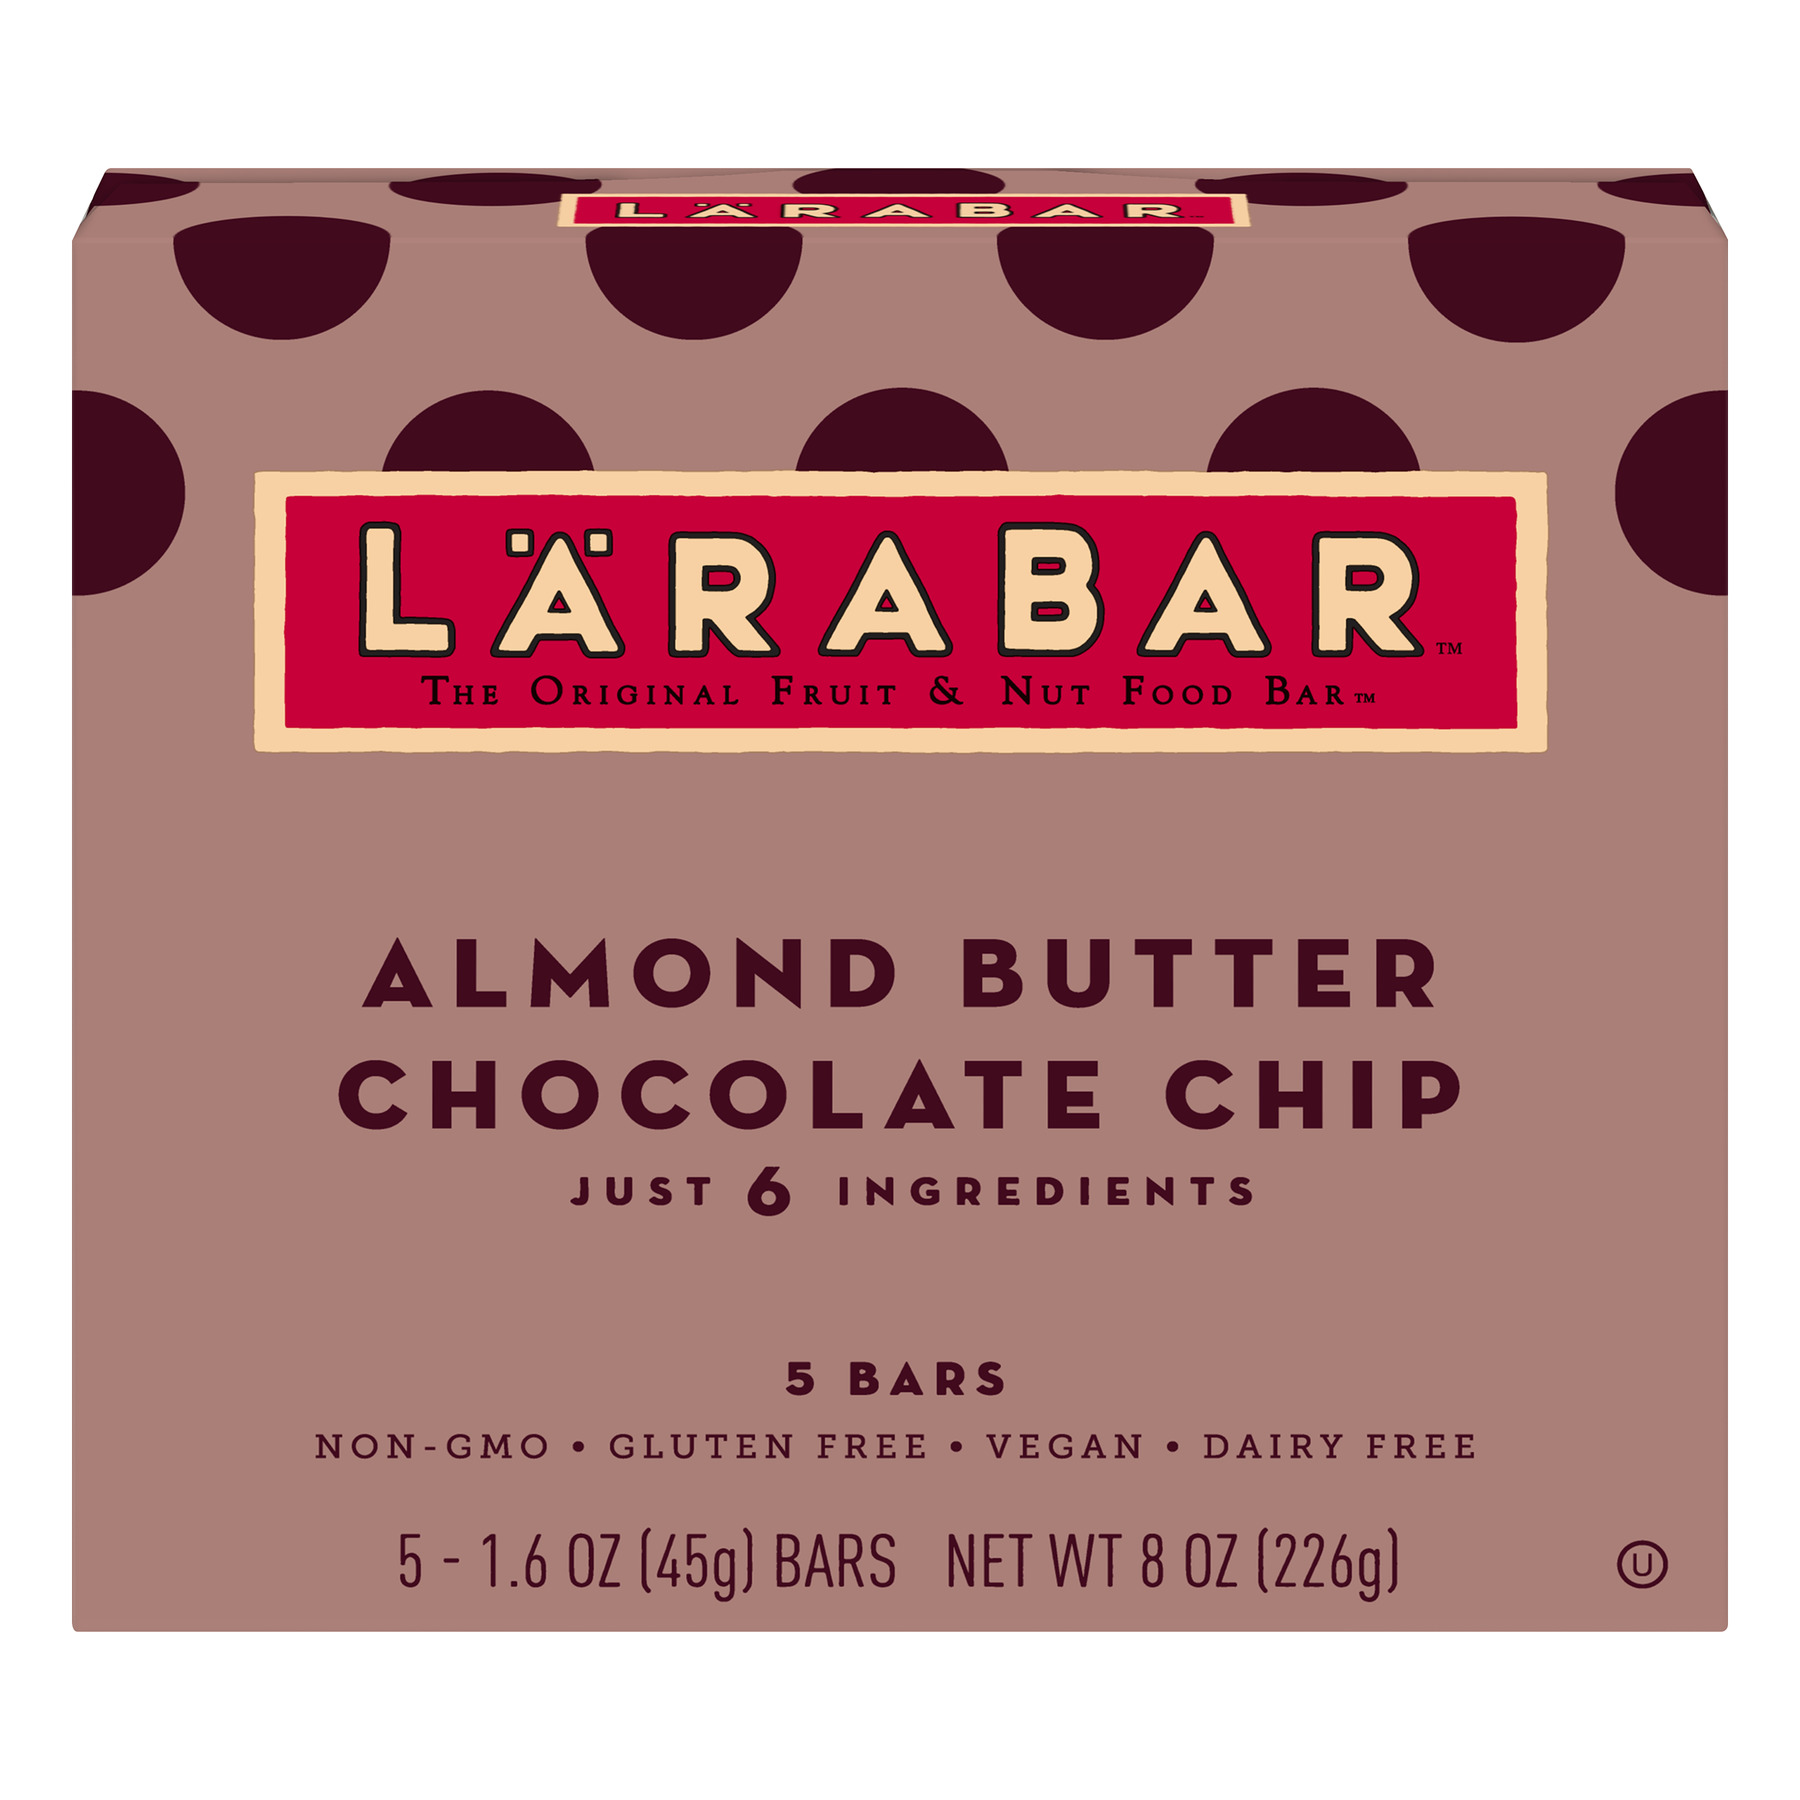 Larabar Almond Butter Chocolate Chip Bars, Gluten Free, 5 ct Box, 8 oz